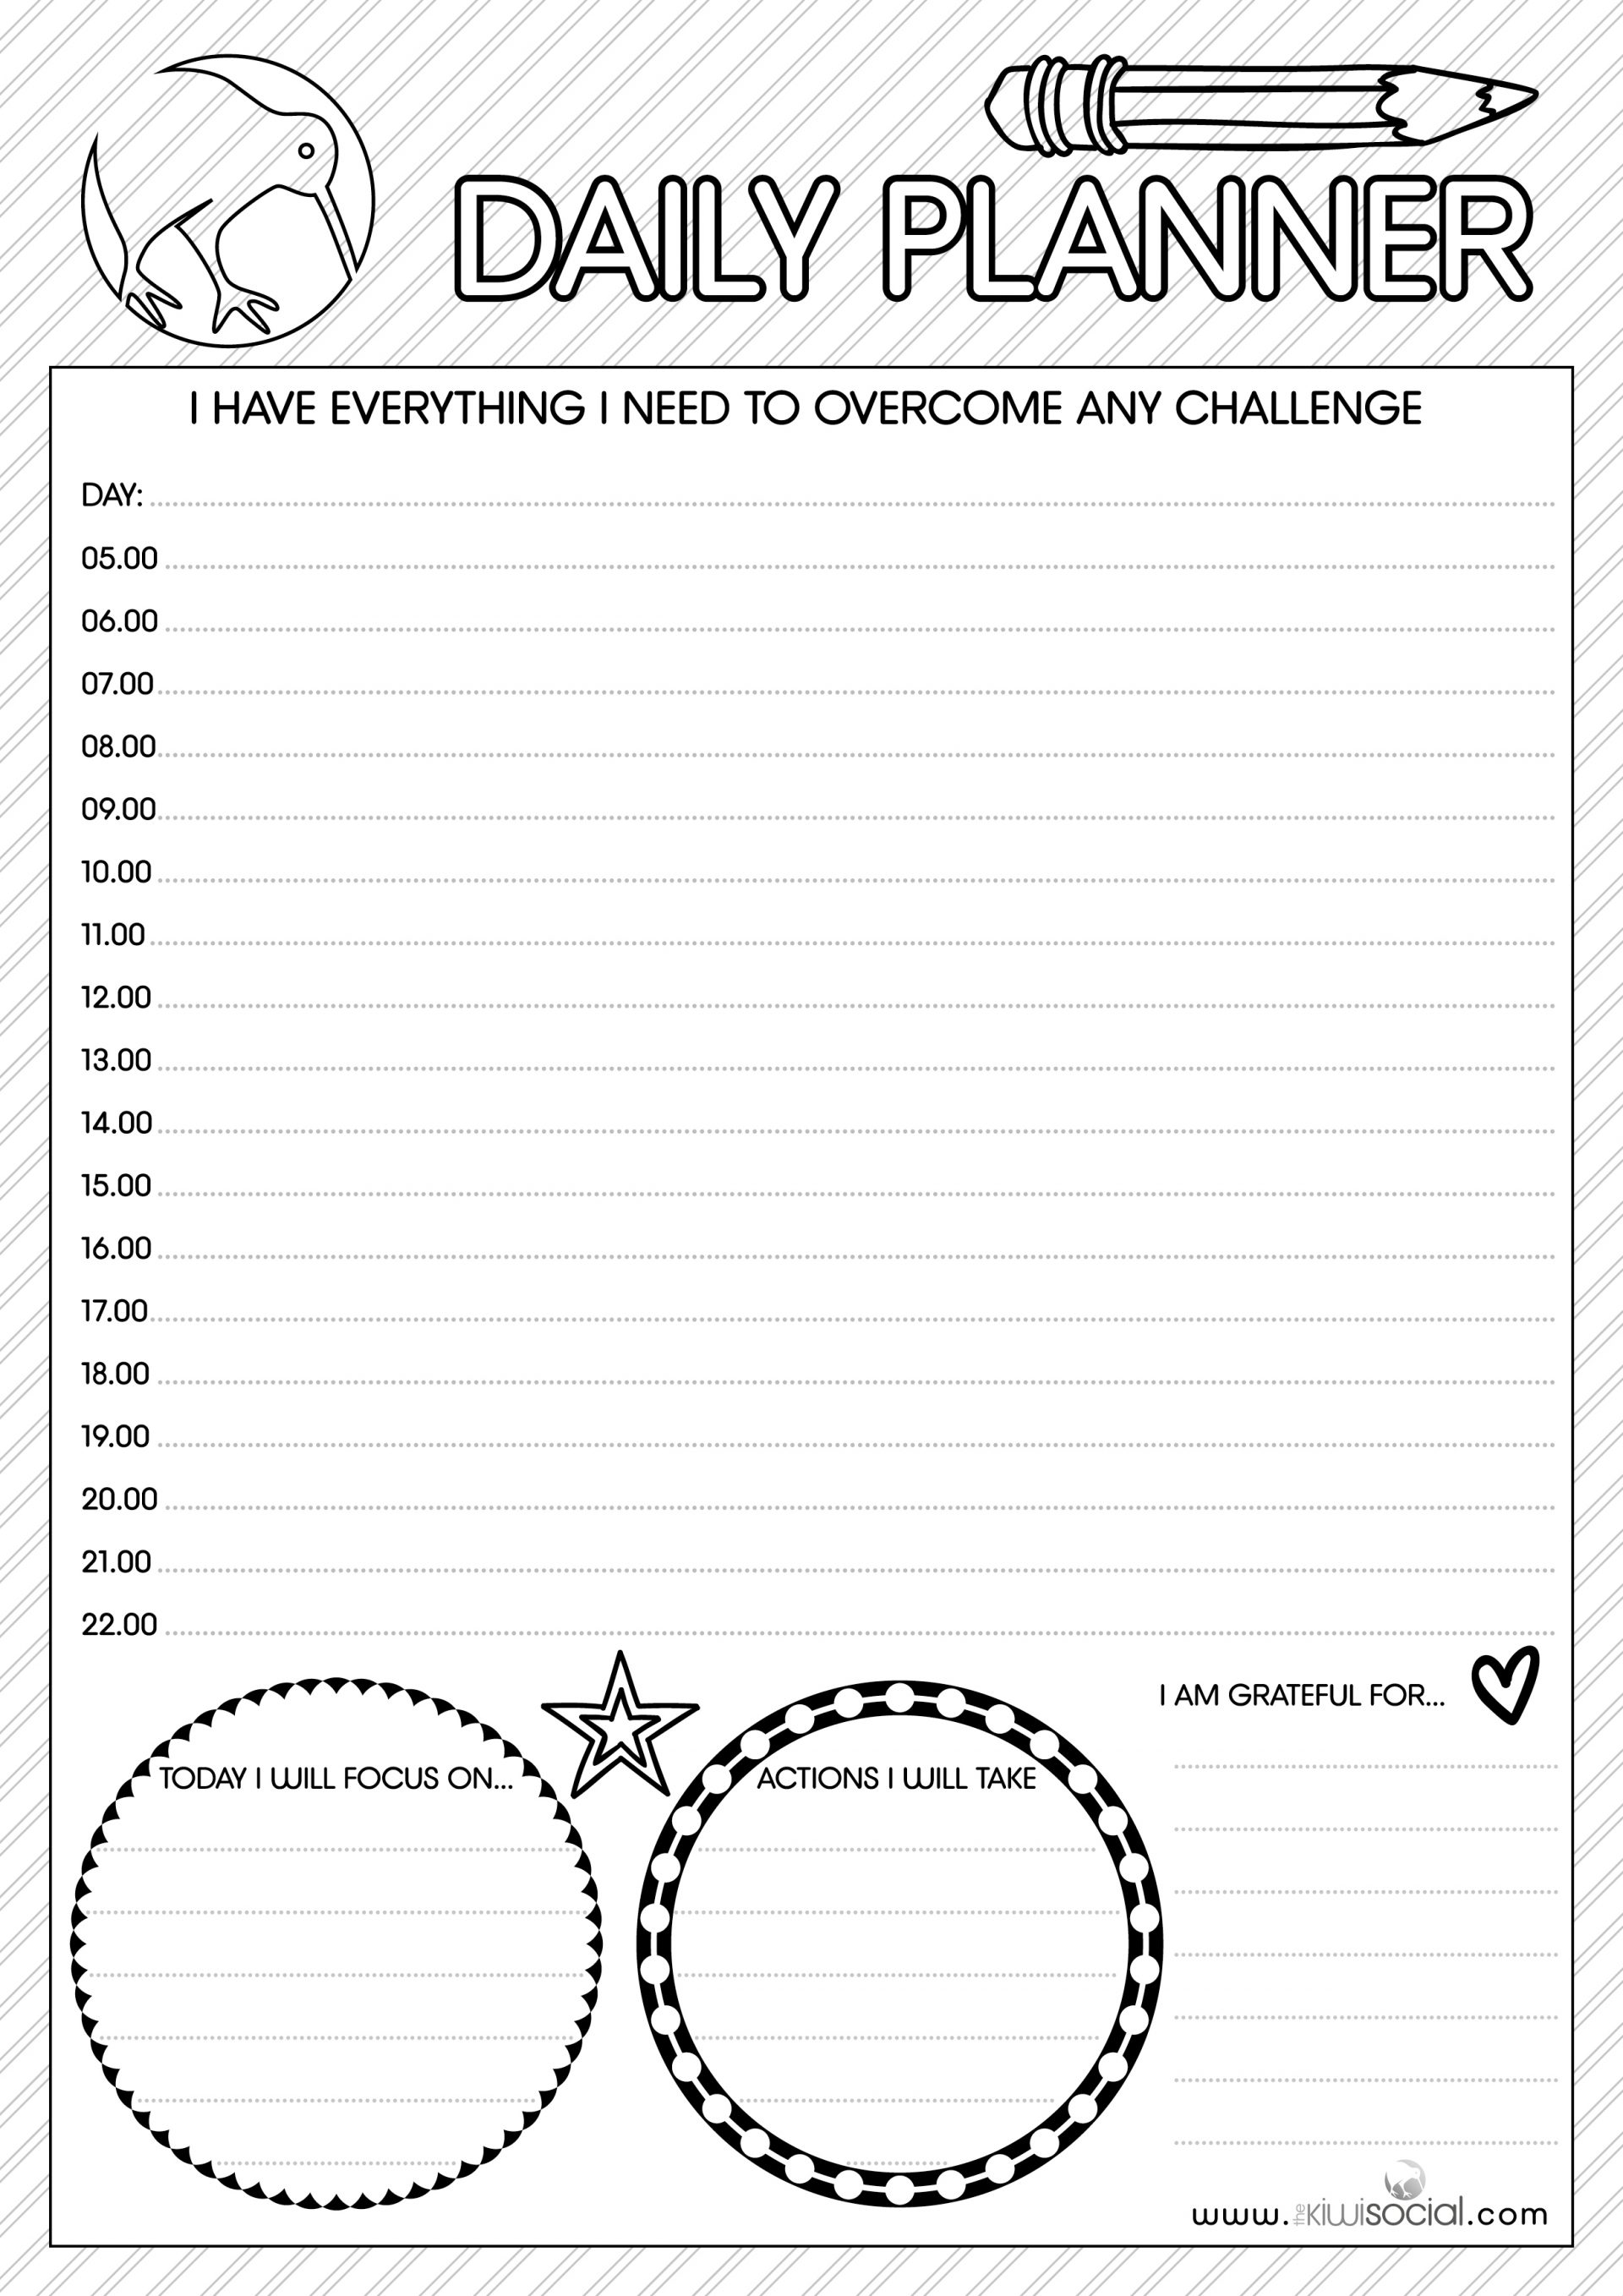 Downloadable Freebie Daily Planner a place to write your daily actions from the Kiwi Social.  With spaces to jot ideas and colour in for mindfulness